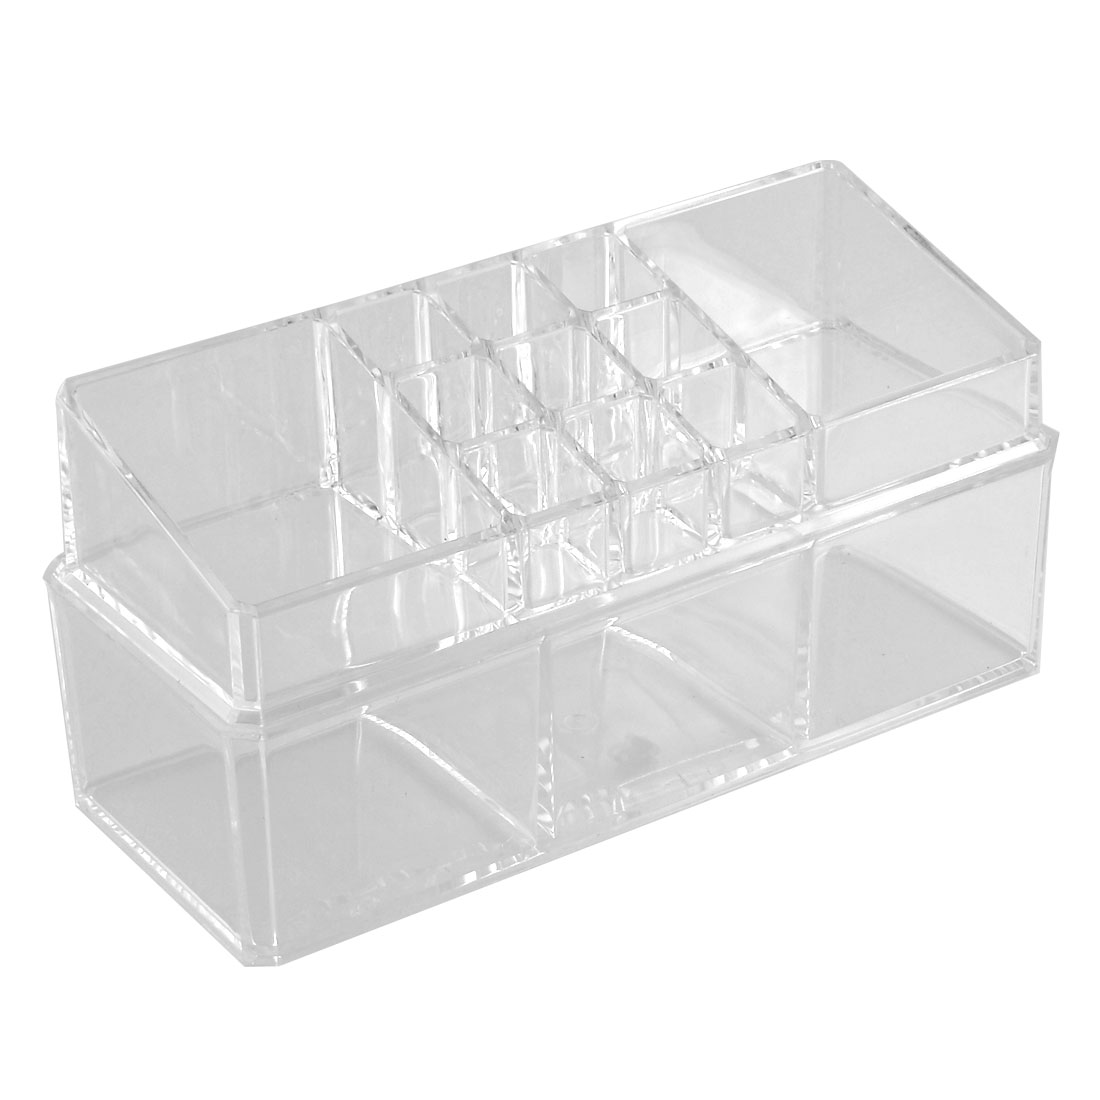 Household Acrylic Double Layers Jewelry Comestic Storage Case Organizer